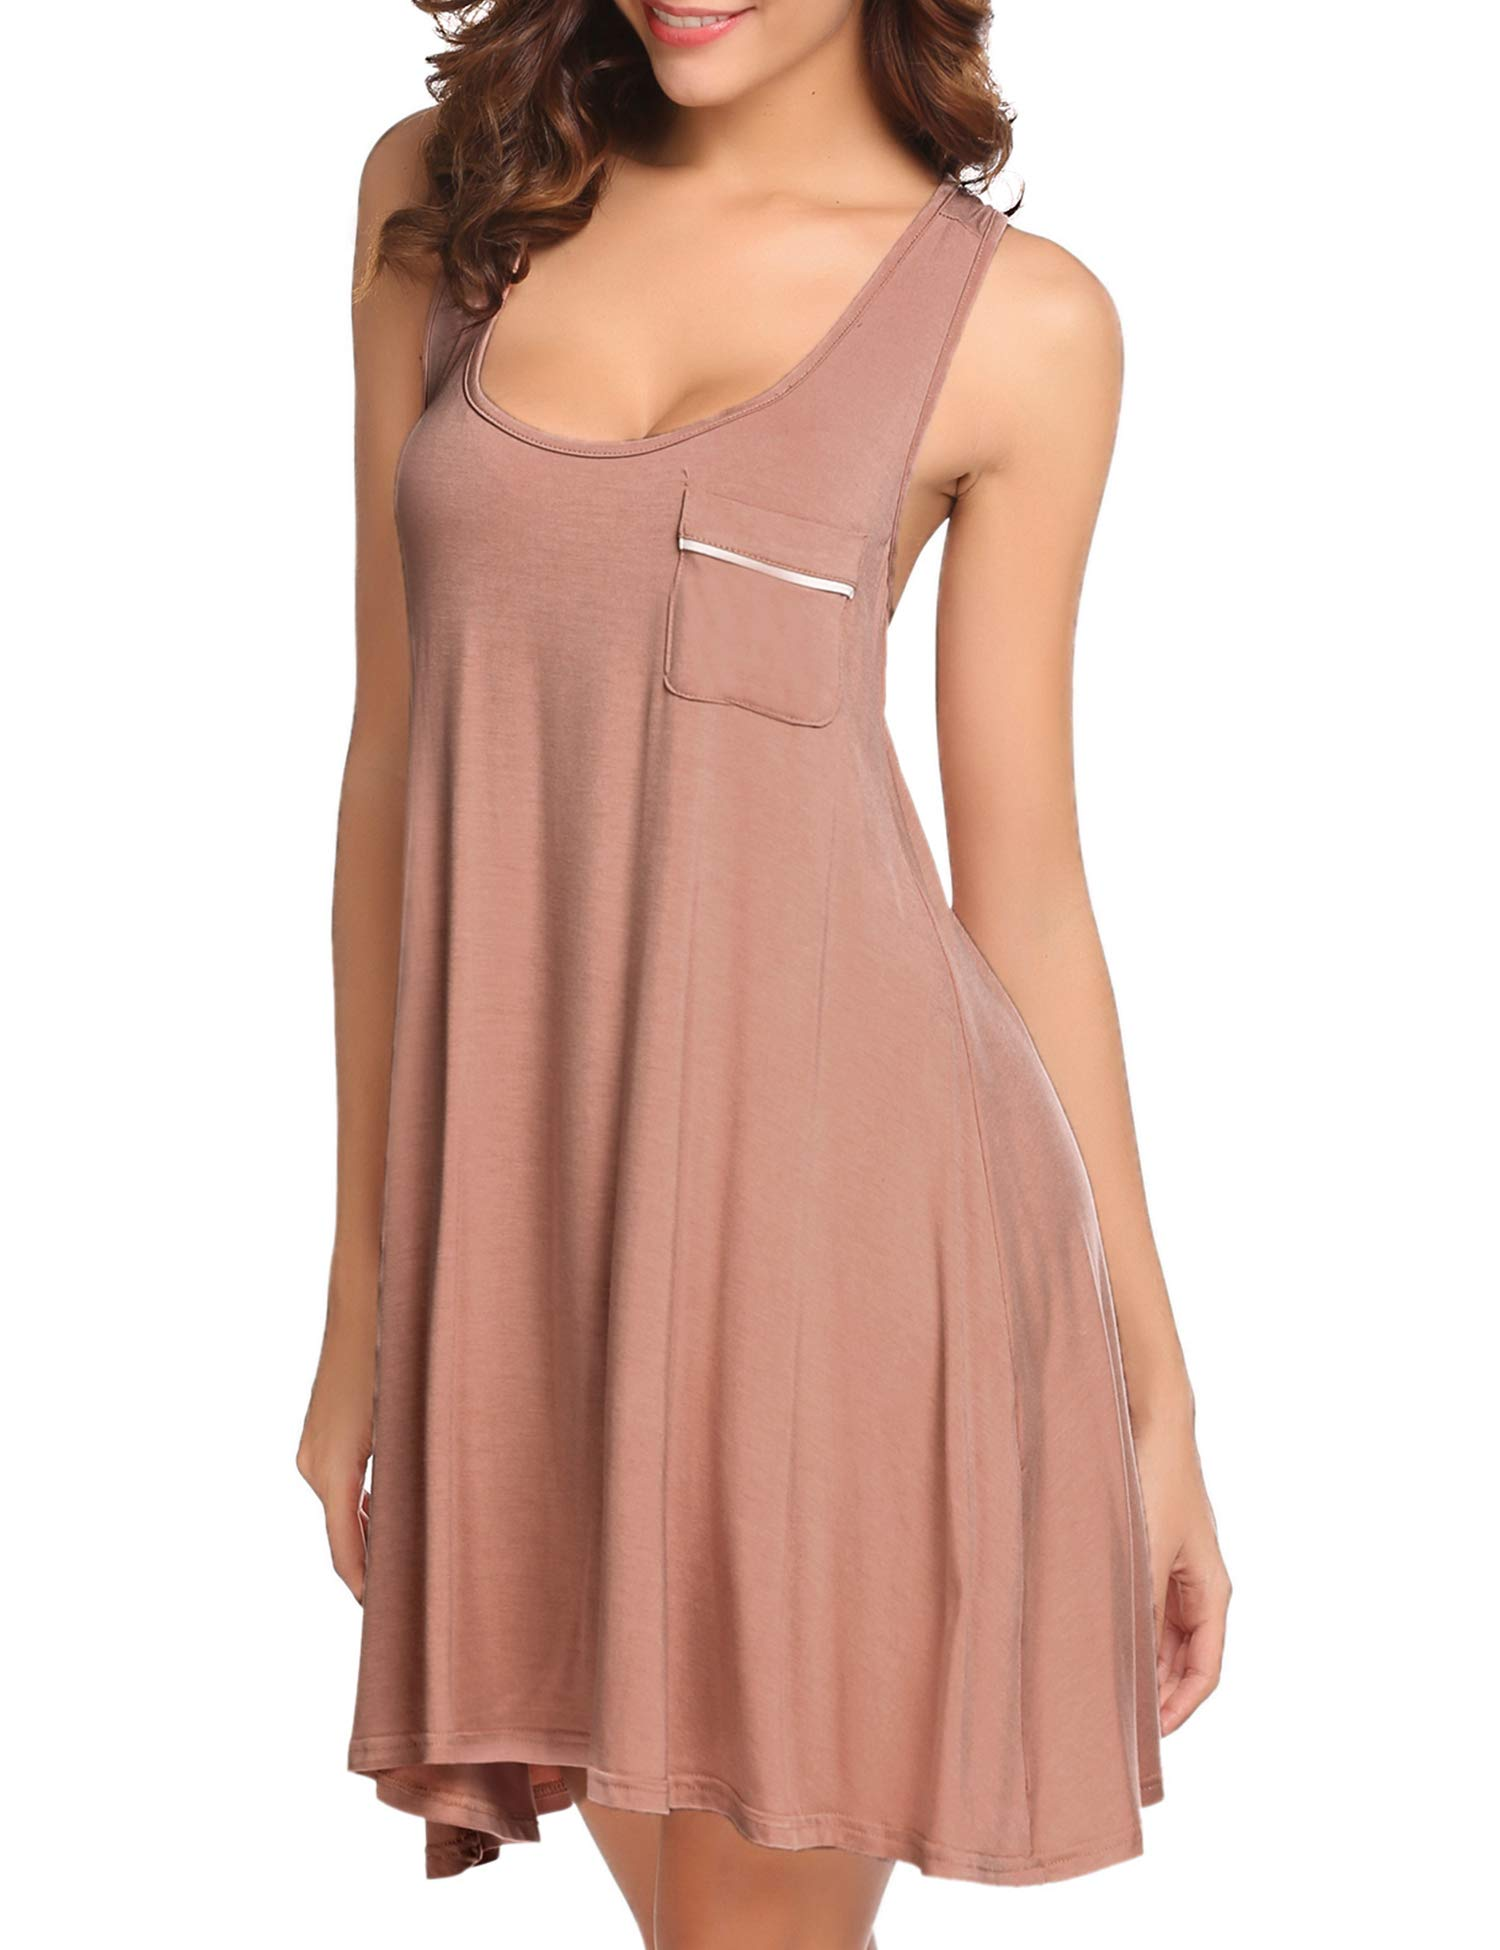 Vesmatity Pajama Gown Womens Comfortable Sleepwear Chemise (Nude, Medium)